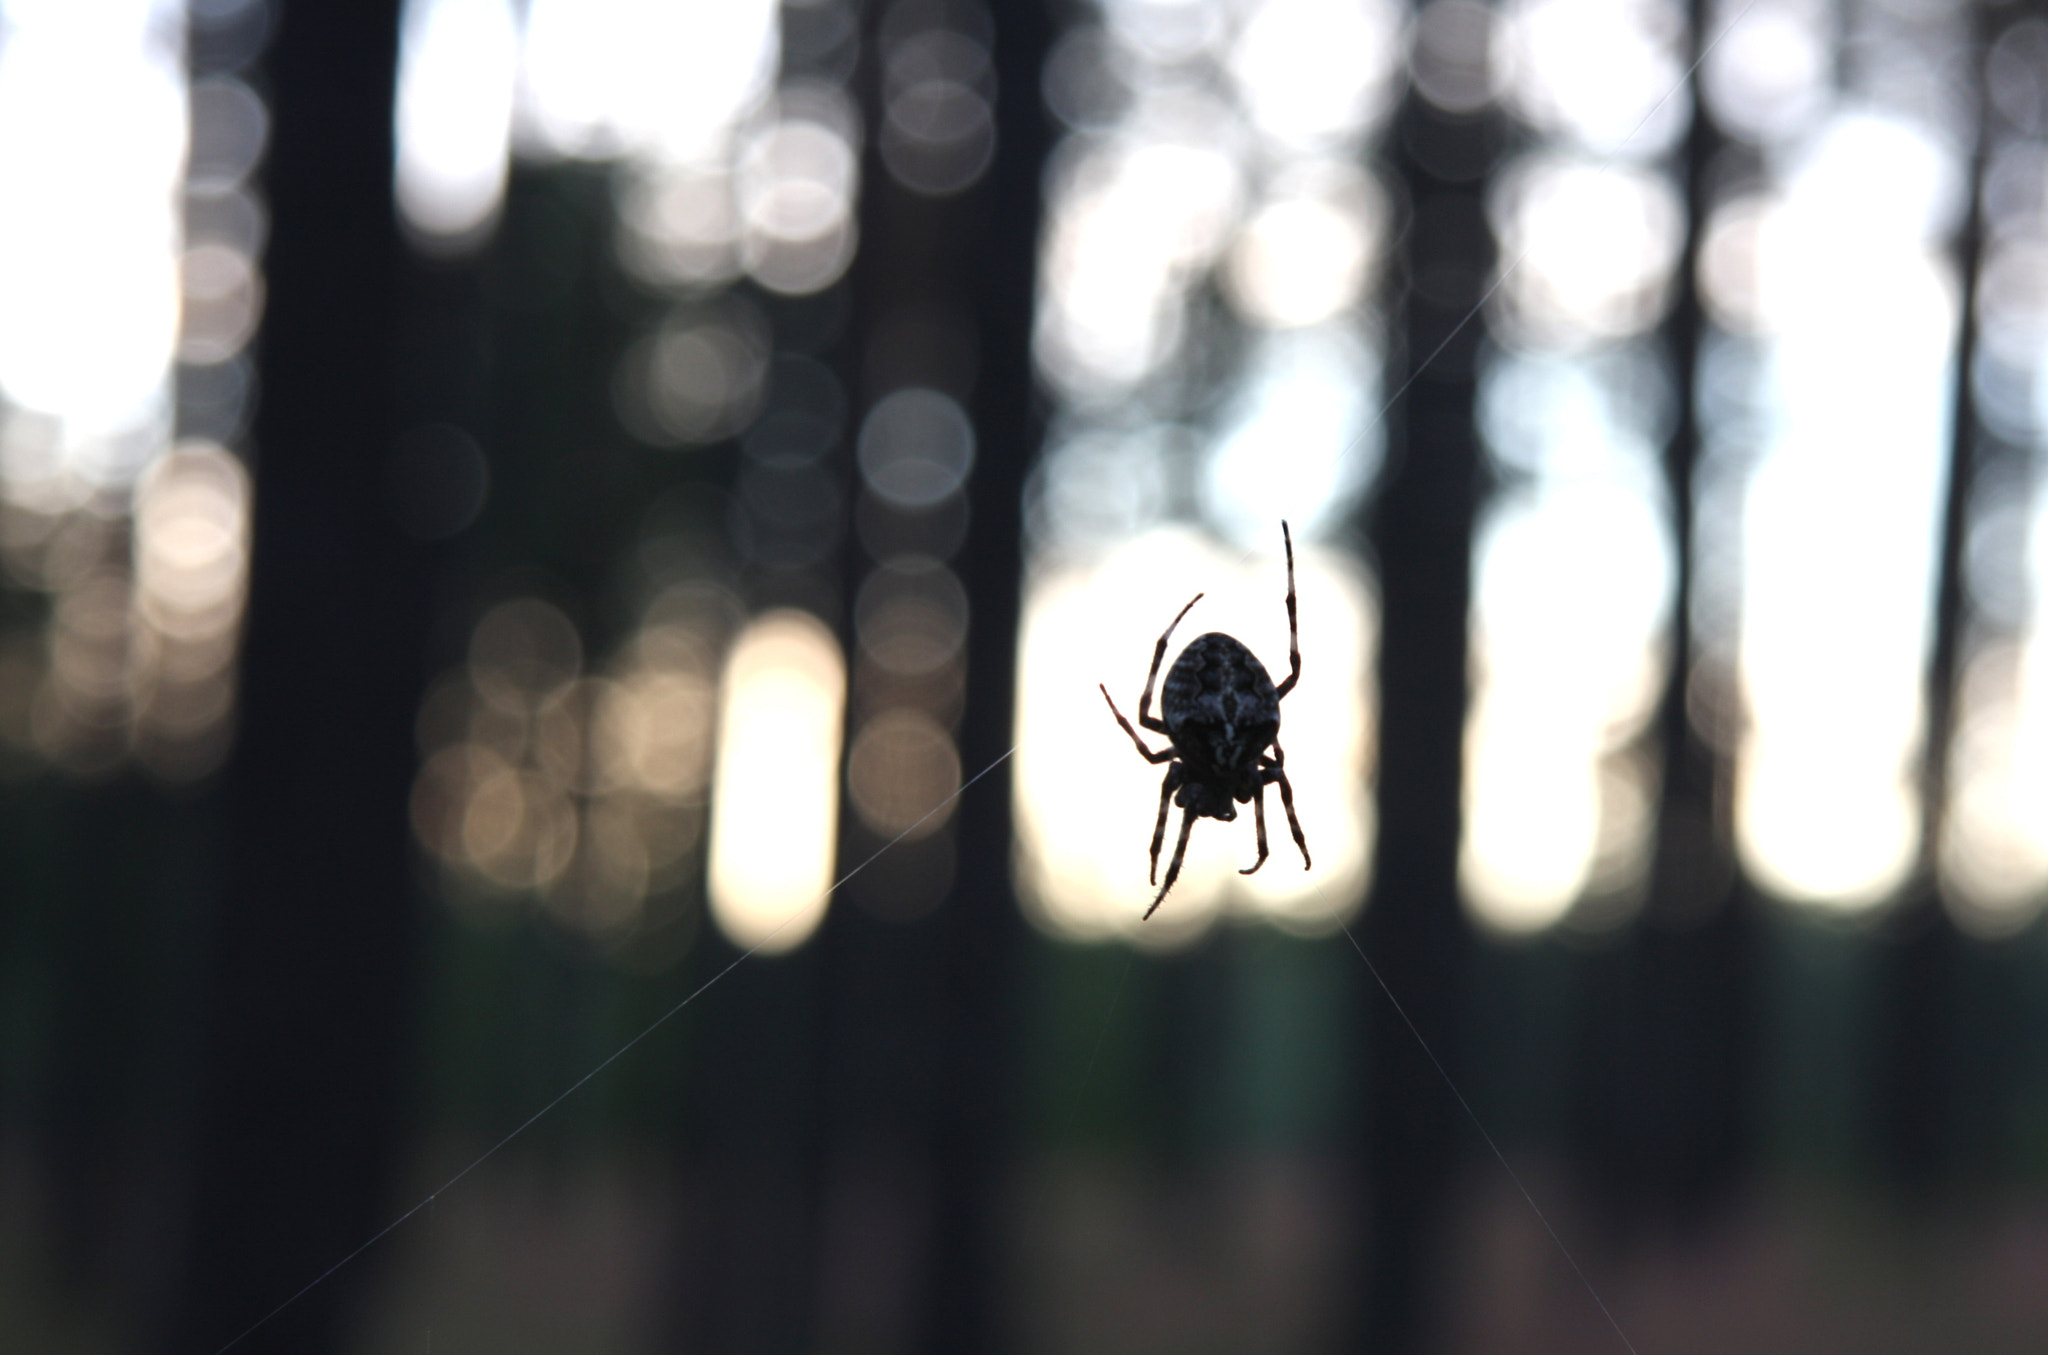 Photograph Spider by andris rubins on 500px